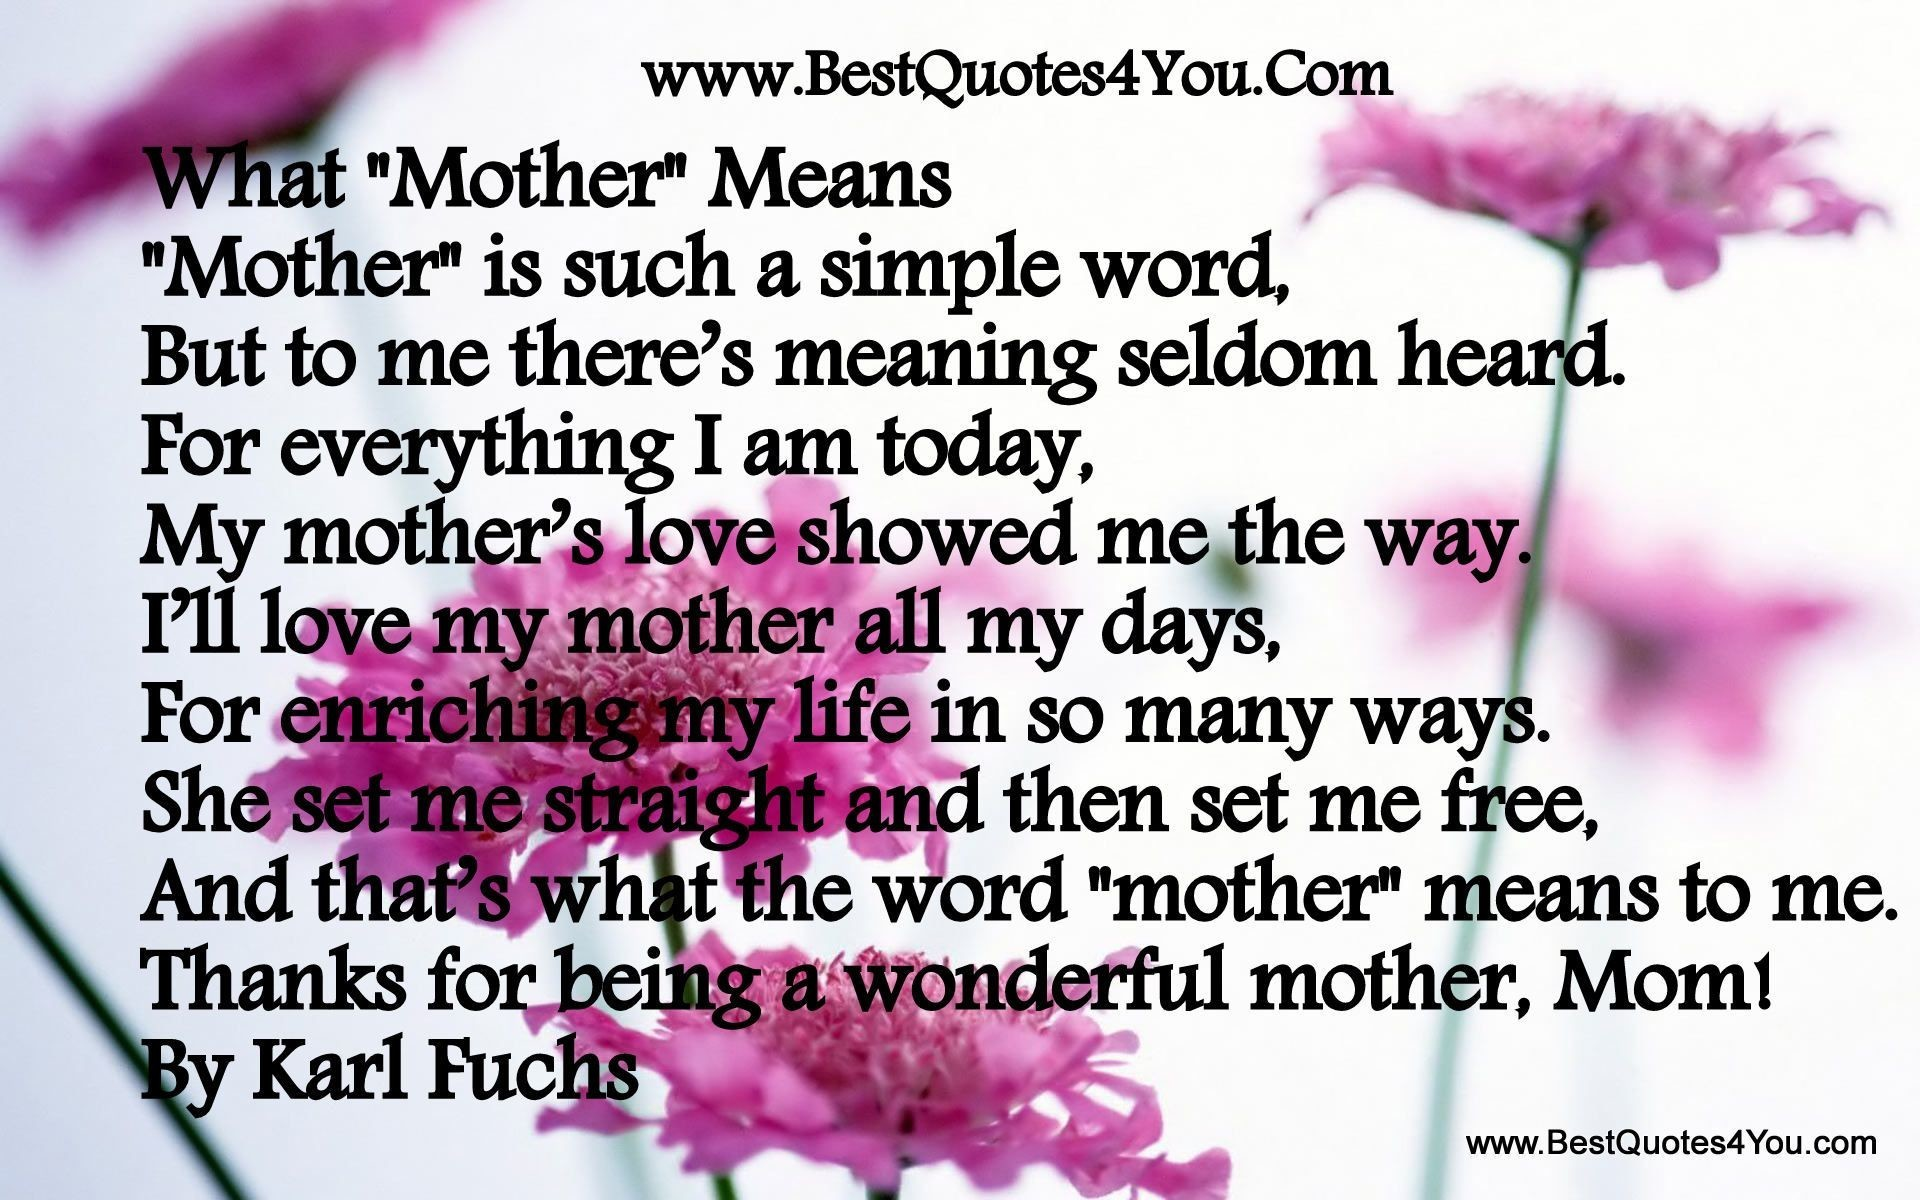 mothers love for her son essay Check out our top free essays on a mothers love for her son to help you write your own essay.